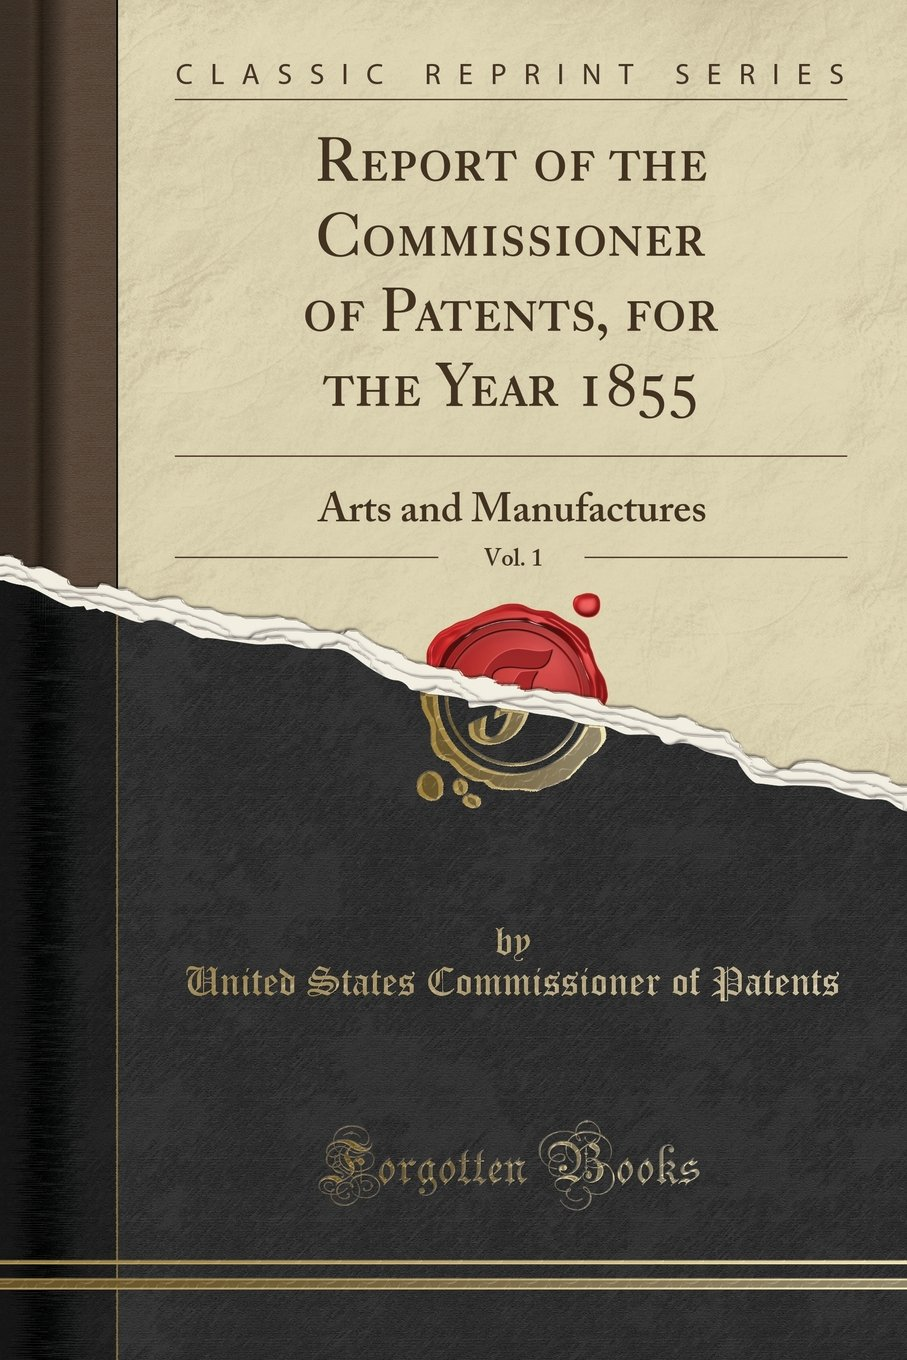 Report of the Commissioner of Patents, for the Year 1855, Vol. 1: Arts and Manufactures (Classic Reprint) pdf epub